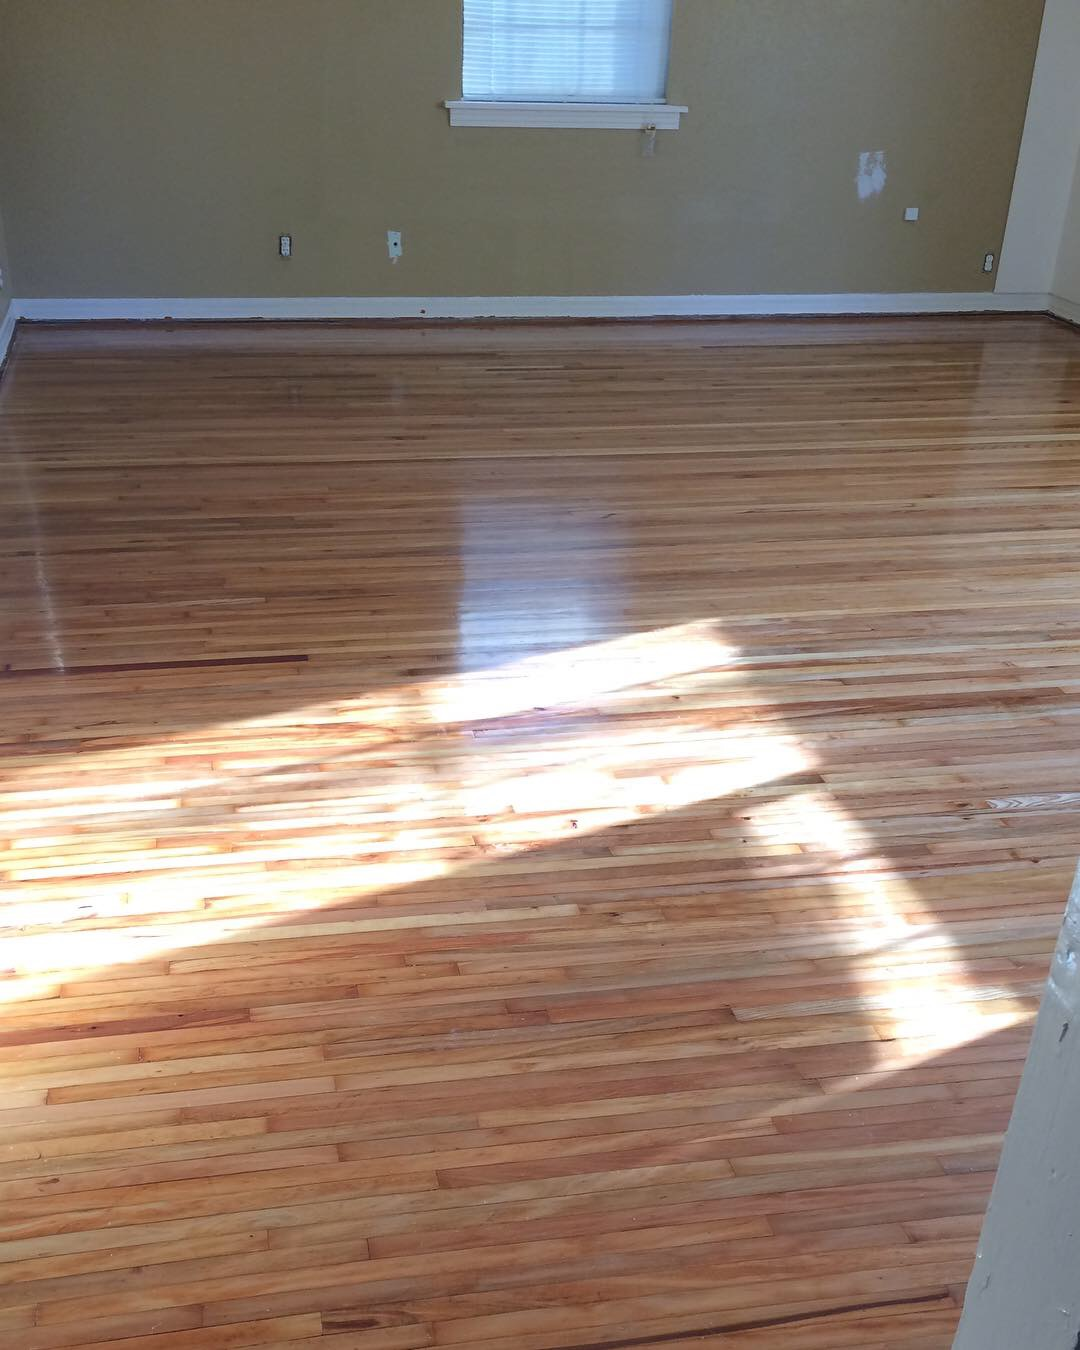 Looking south shortly after Jordan saved the floors. Aren't they beautiful?! I love the way the light streams in. We did not use any stain on the floors, but let them show their natural variance. The planks are very narrow, which is an old style of hardwood.